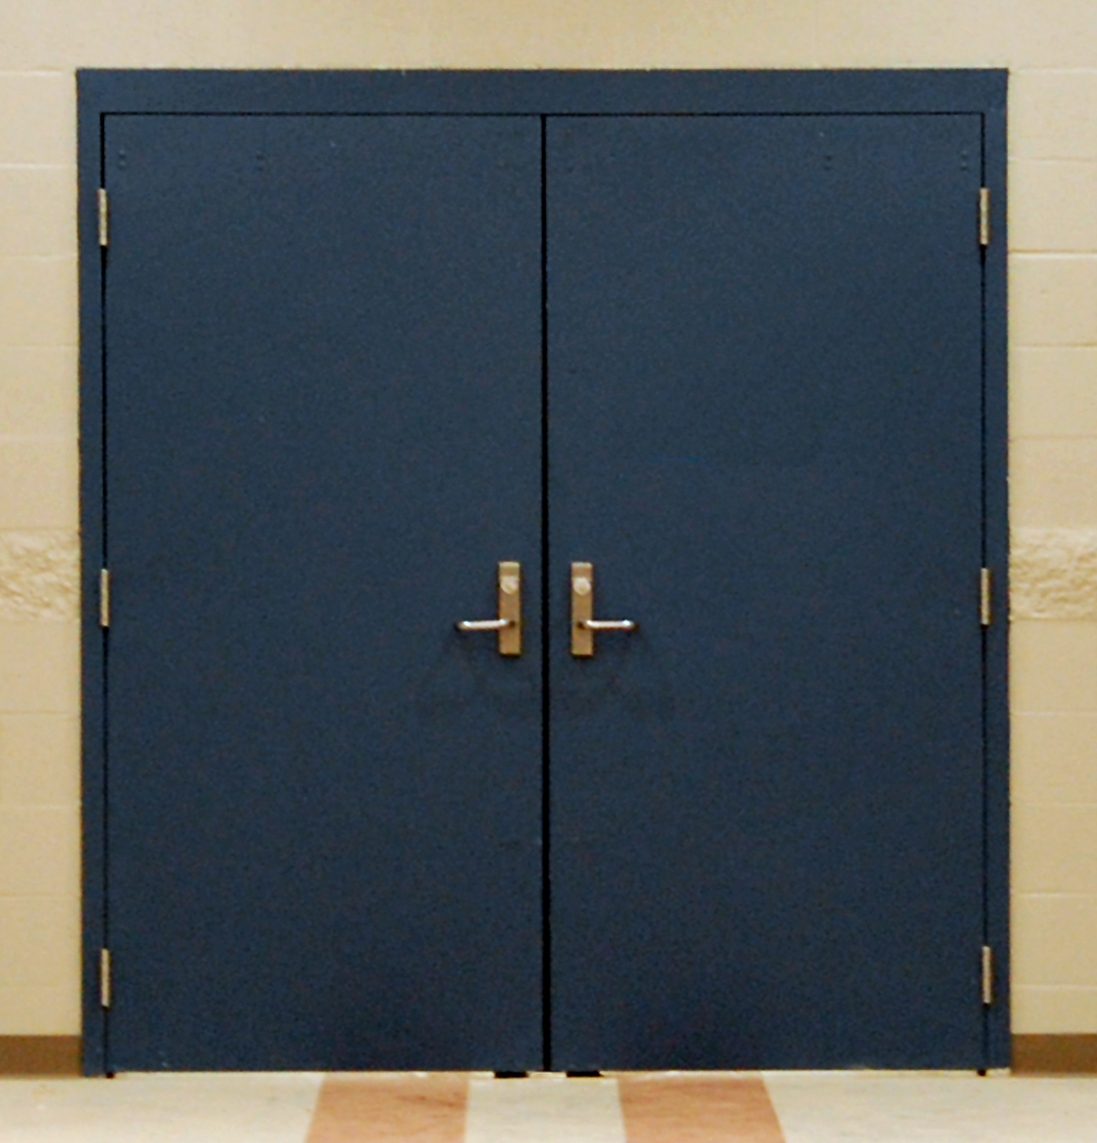 Exterior Metal Double Doors Are More Resistant To Damage And Easy To